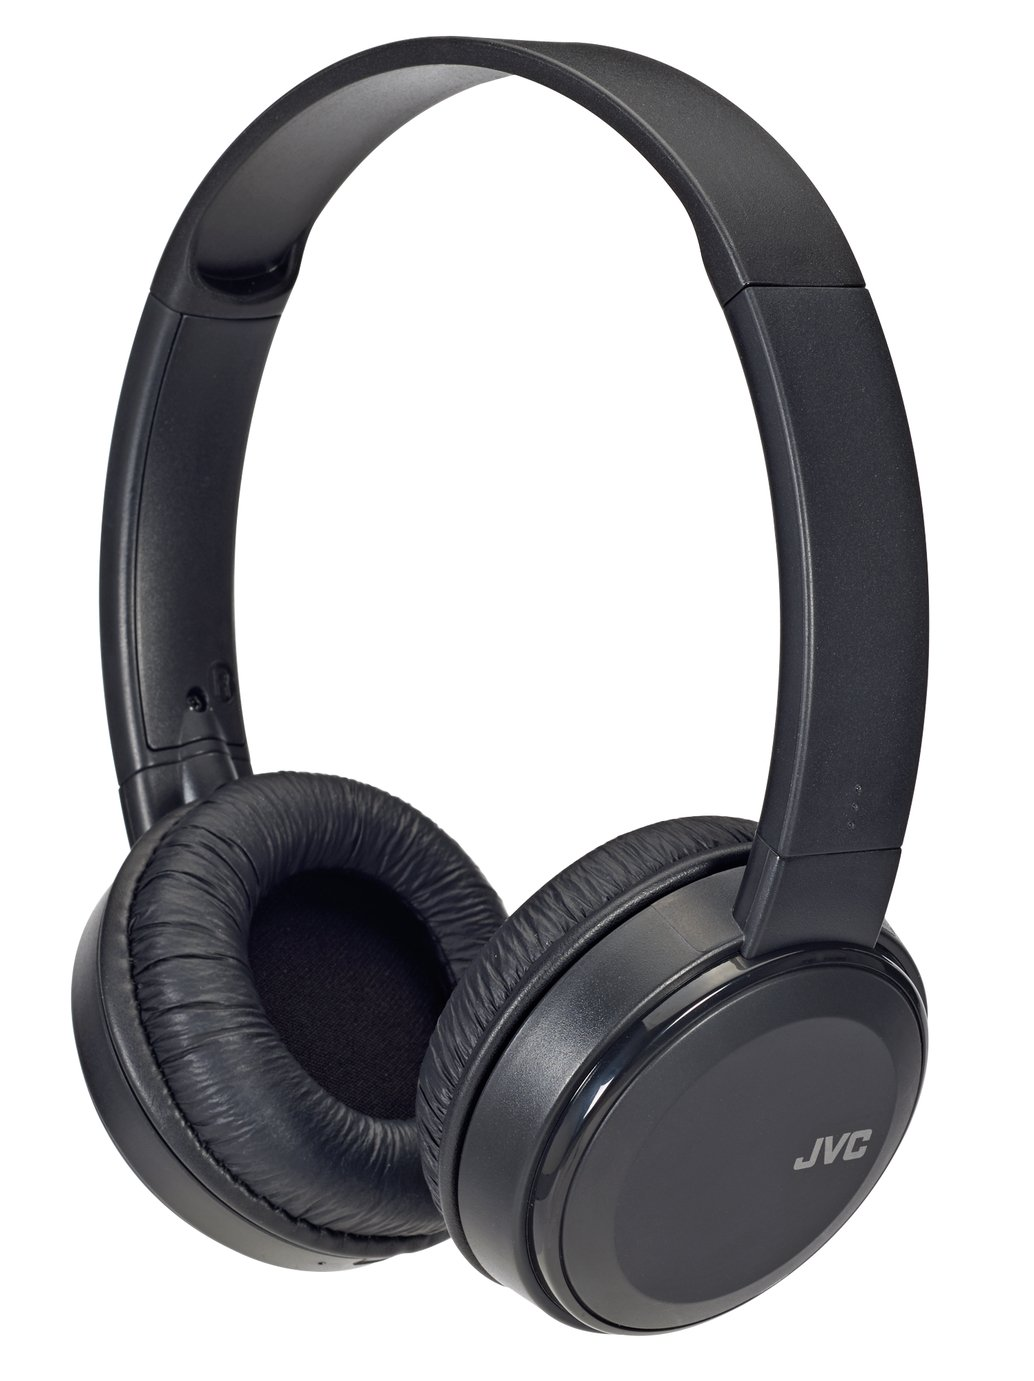 JVC HA-S30 Wireless On-Ear Headphones - Black